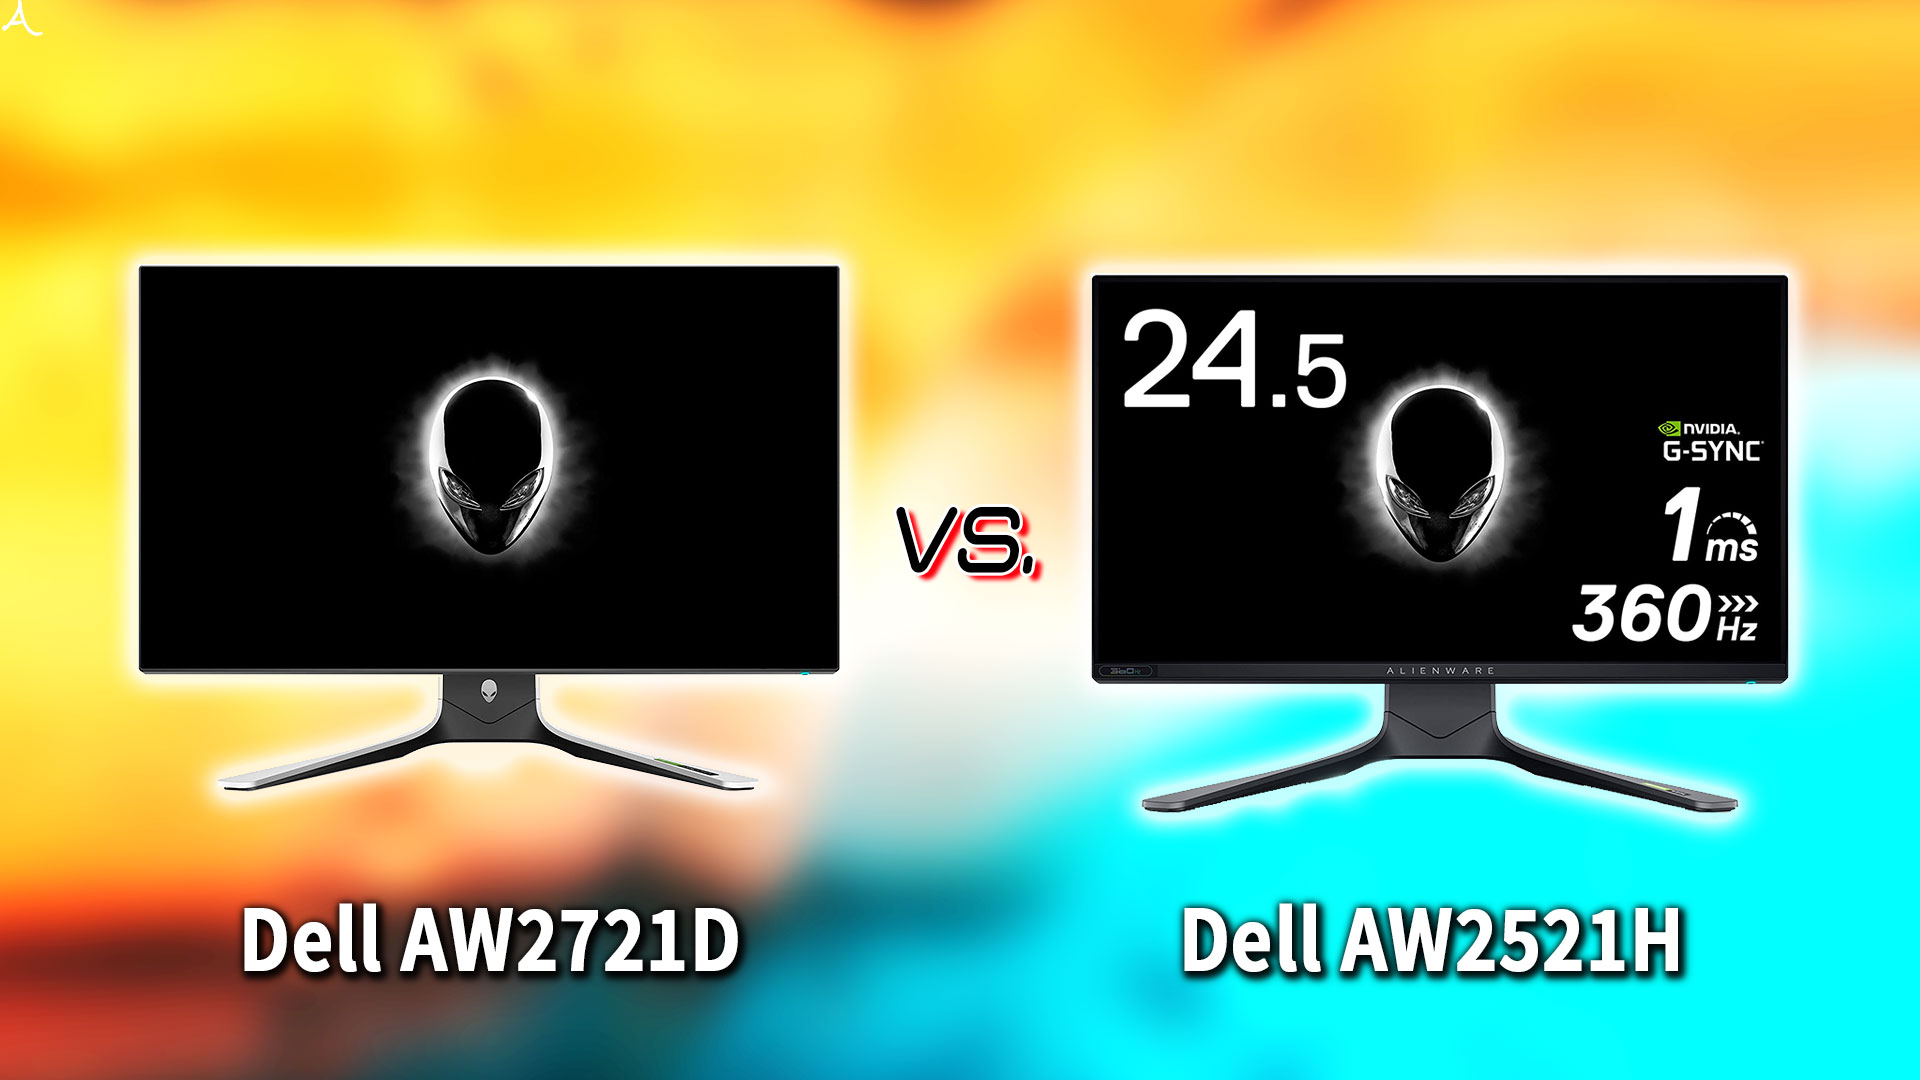 「Dell ALIENWARE AW2721D」と「AW2521H」の違いを比較:どっちを買う?